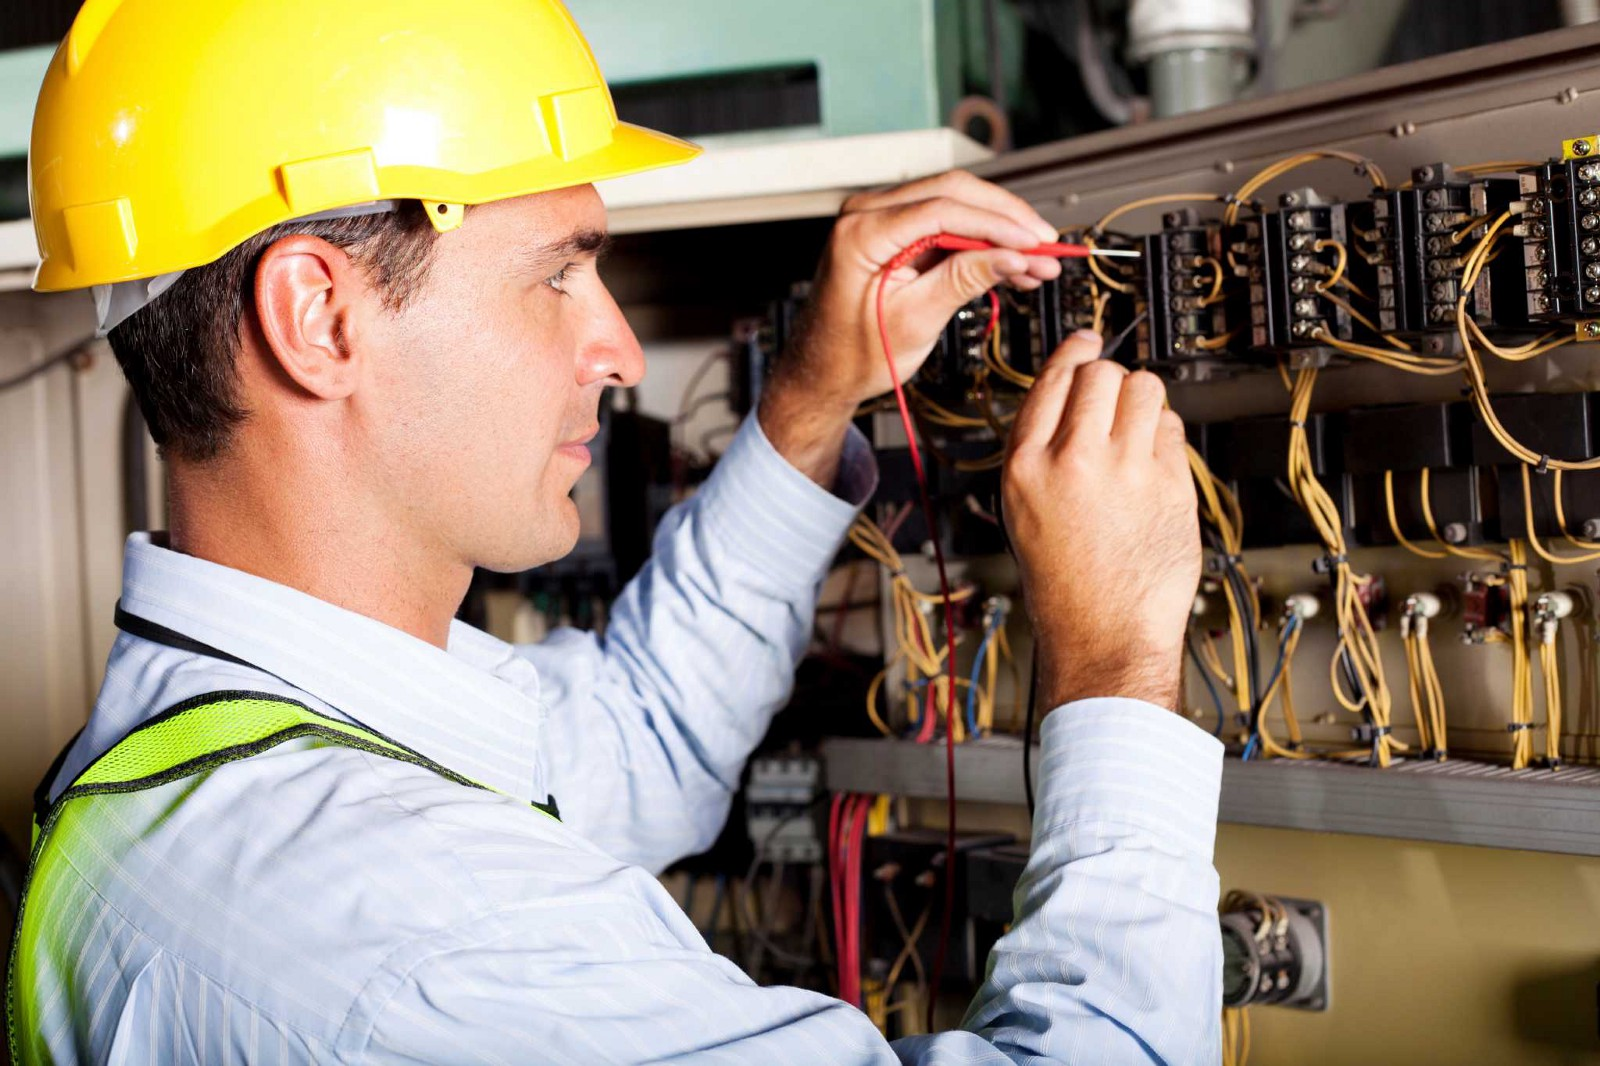 House Rewiring & Test and Inspection Electrician Services in London